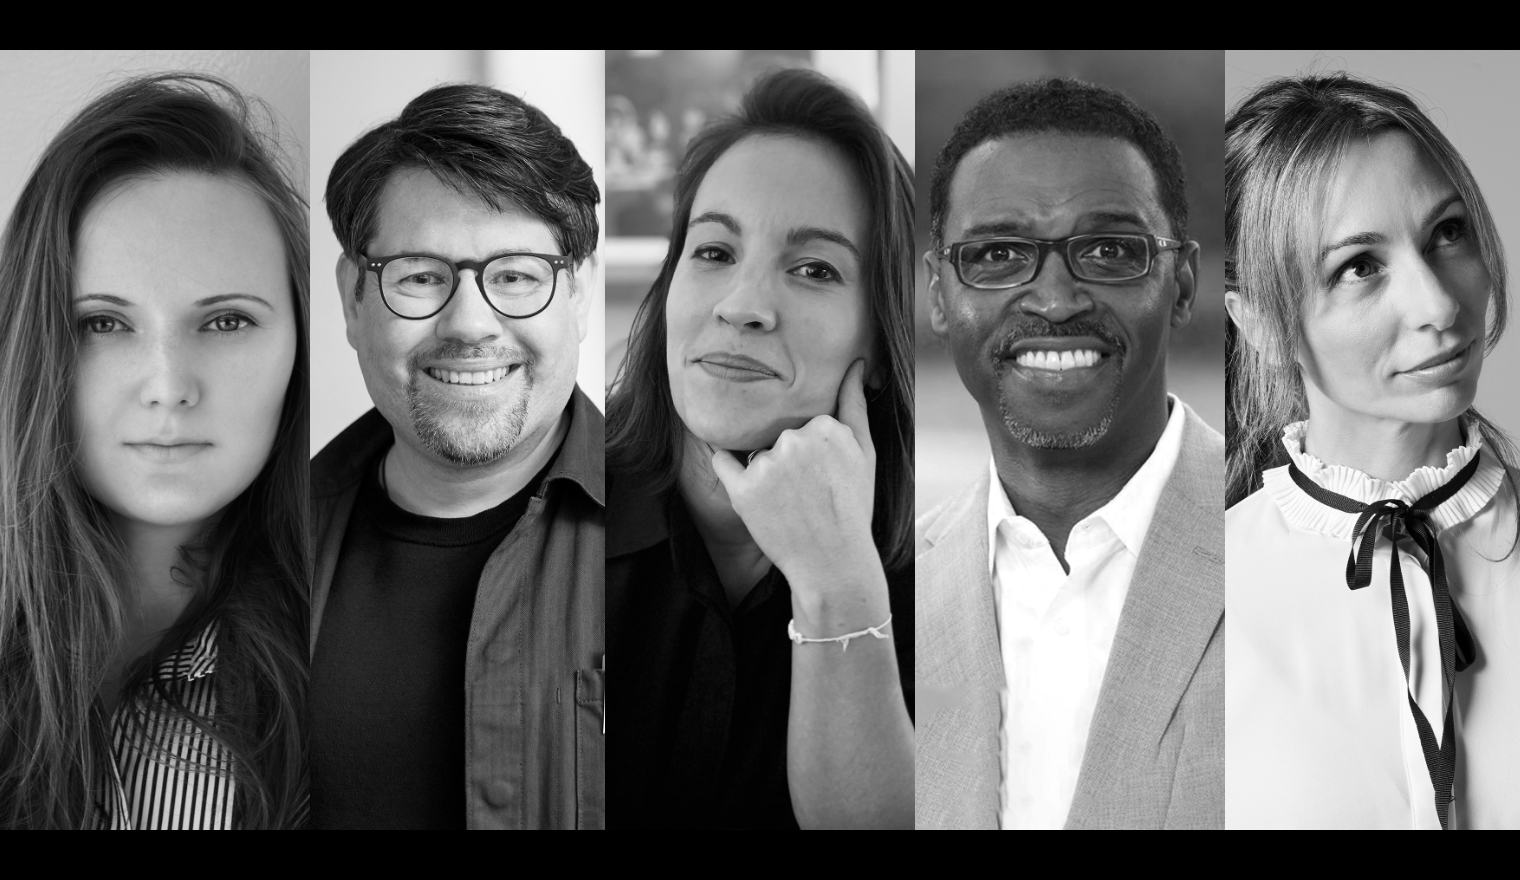 Time to meet the 2021 Pentawards Jury